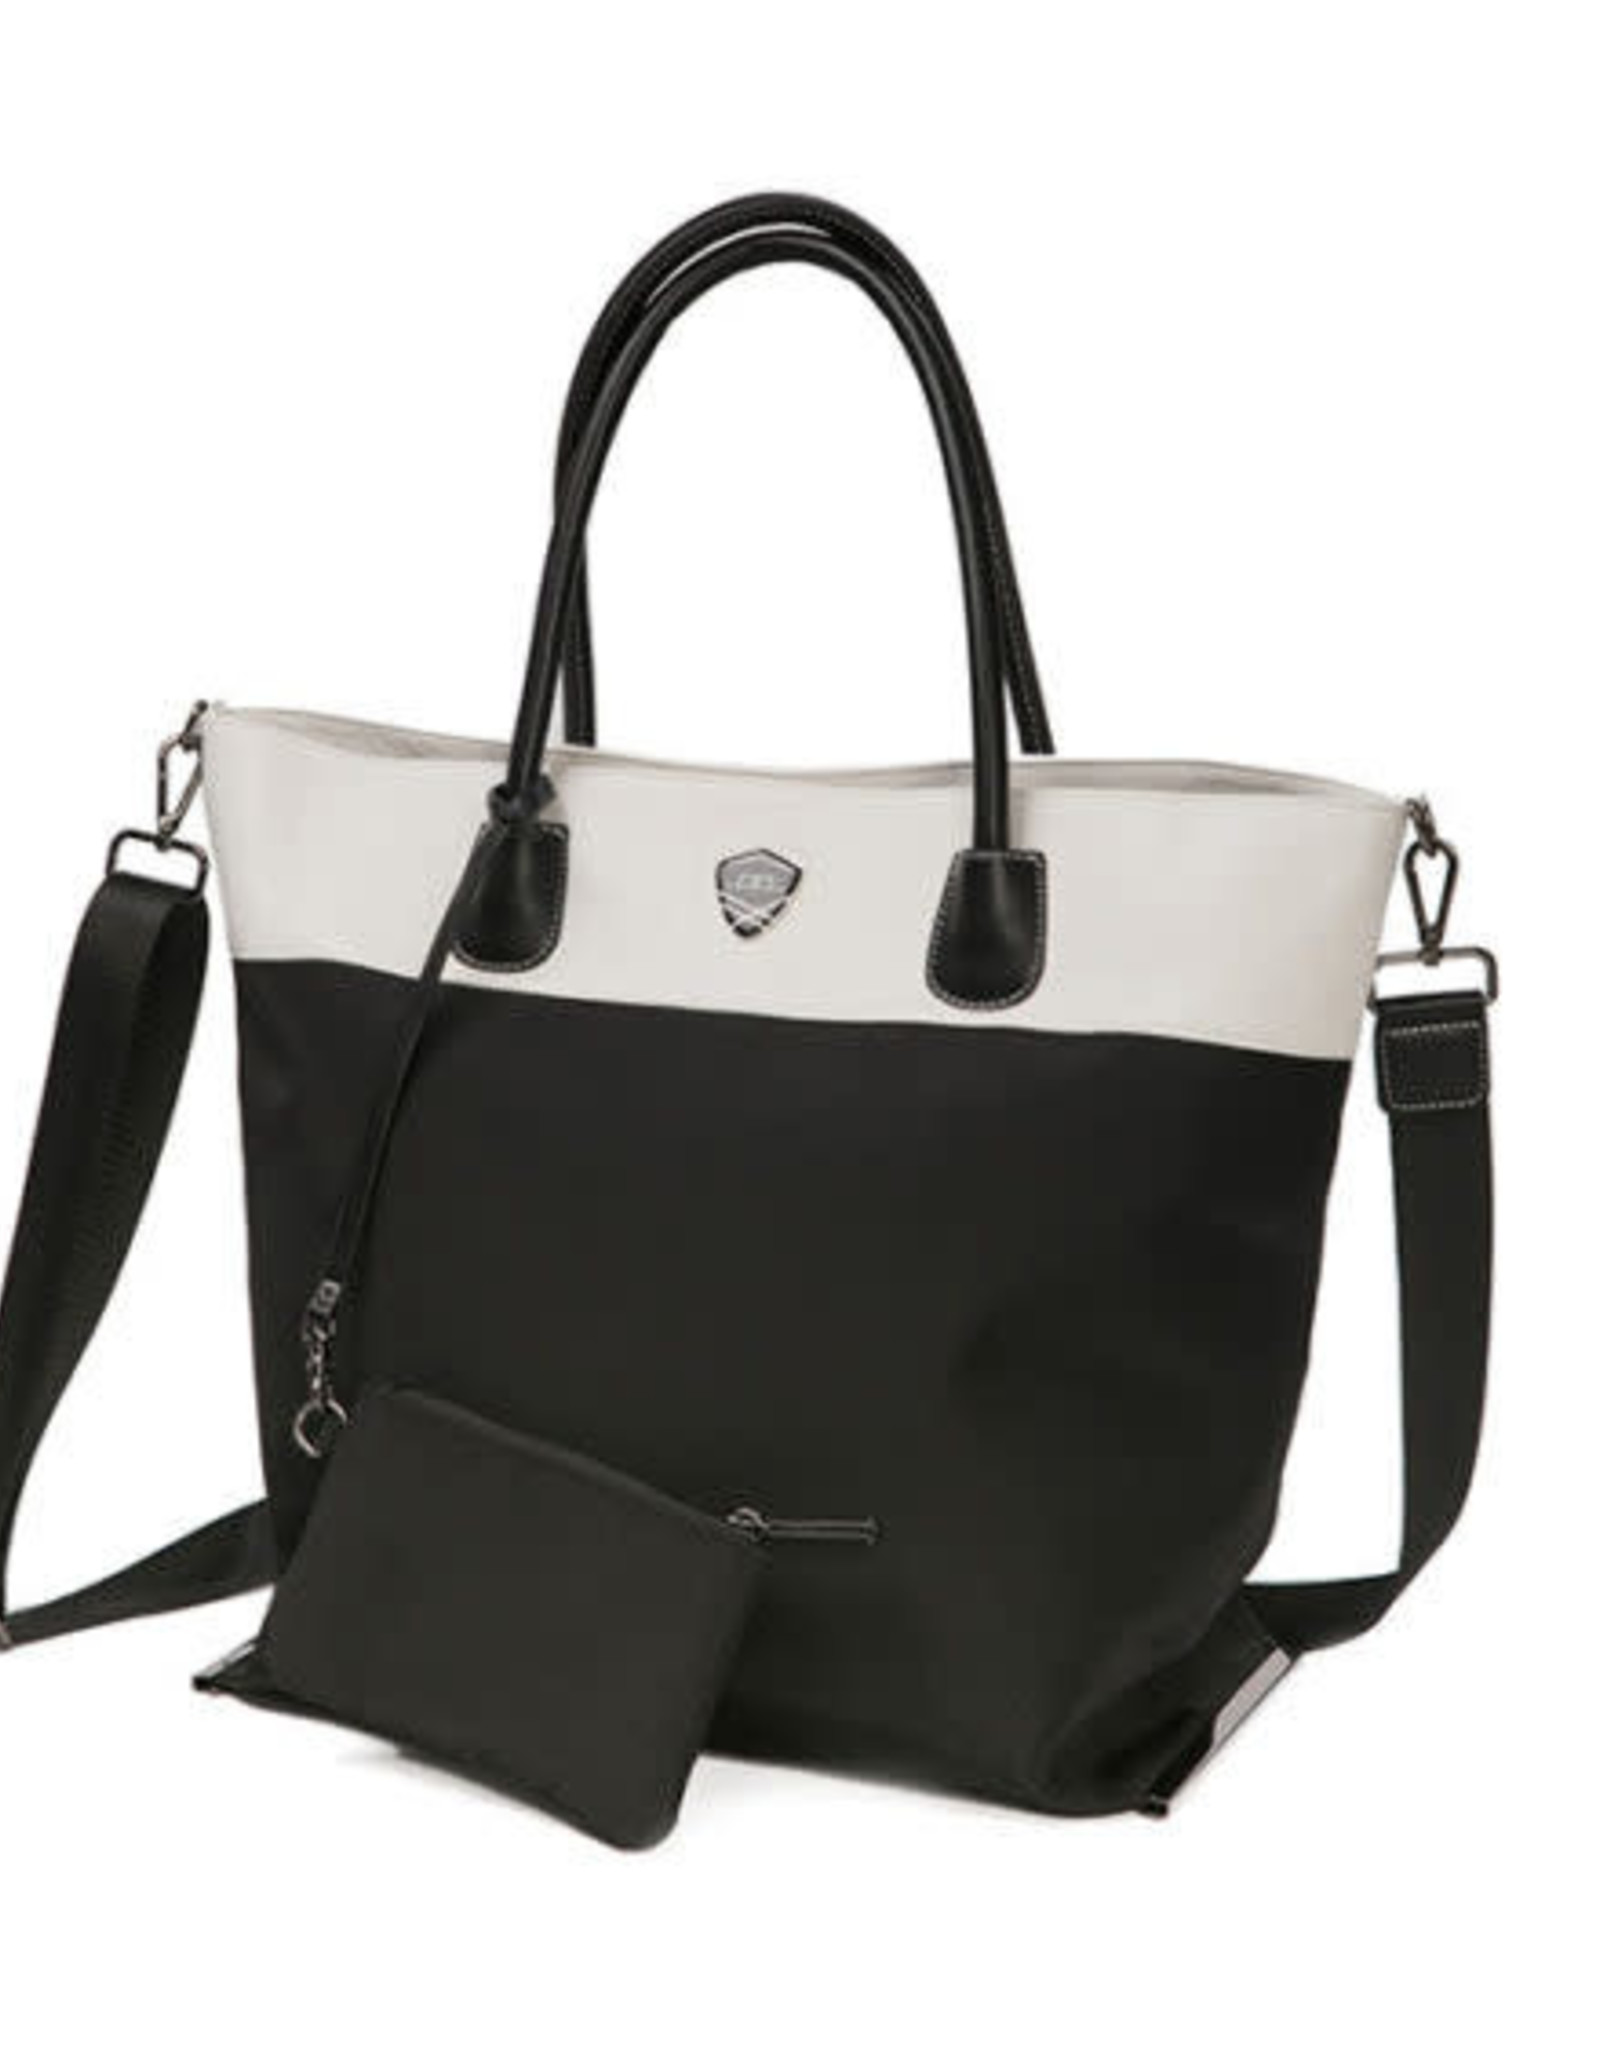 ALESSANDRO ALBANESE TRAVEL TOTE BAG